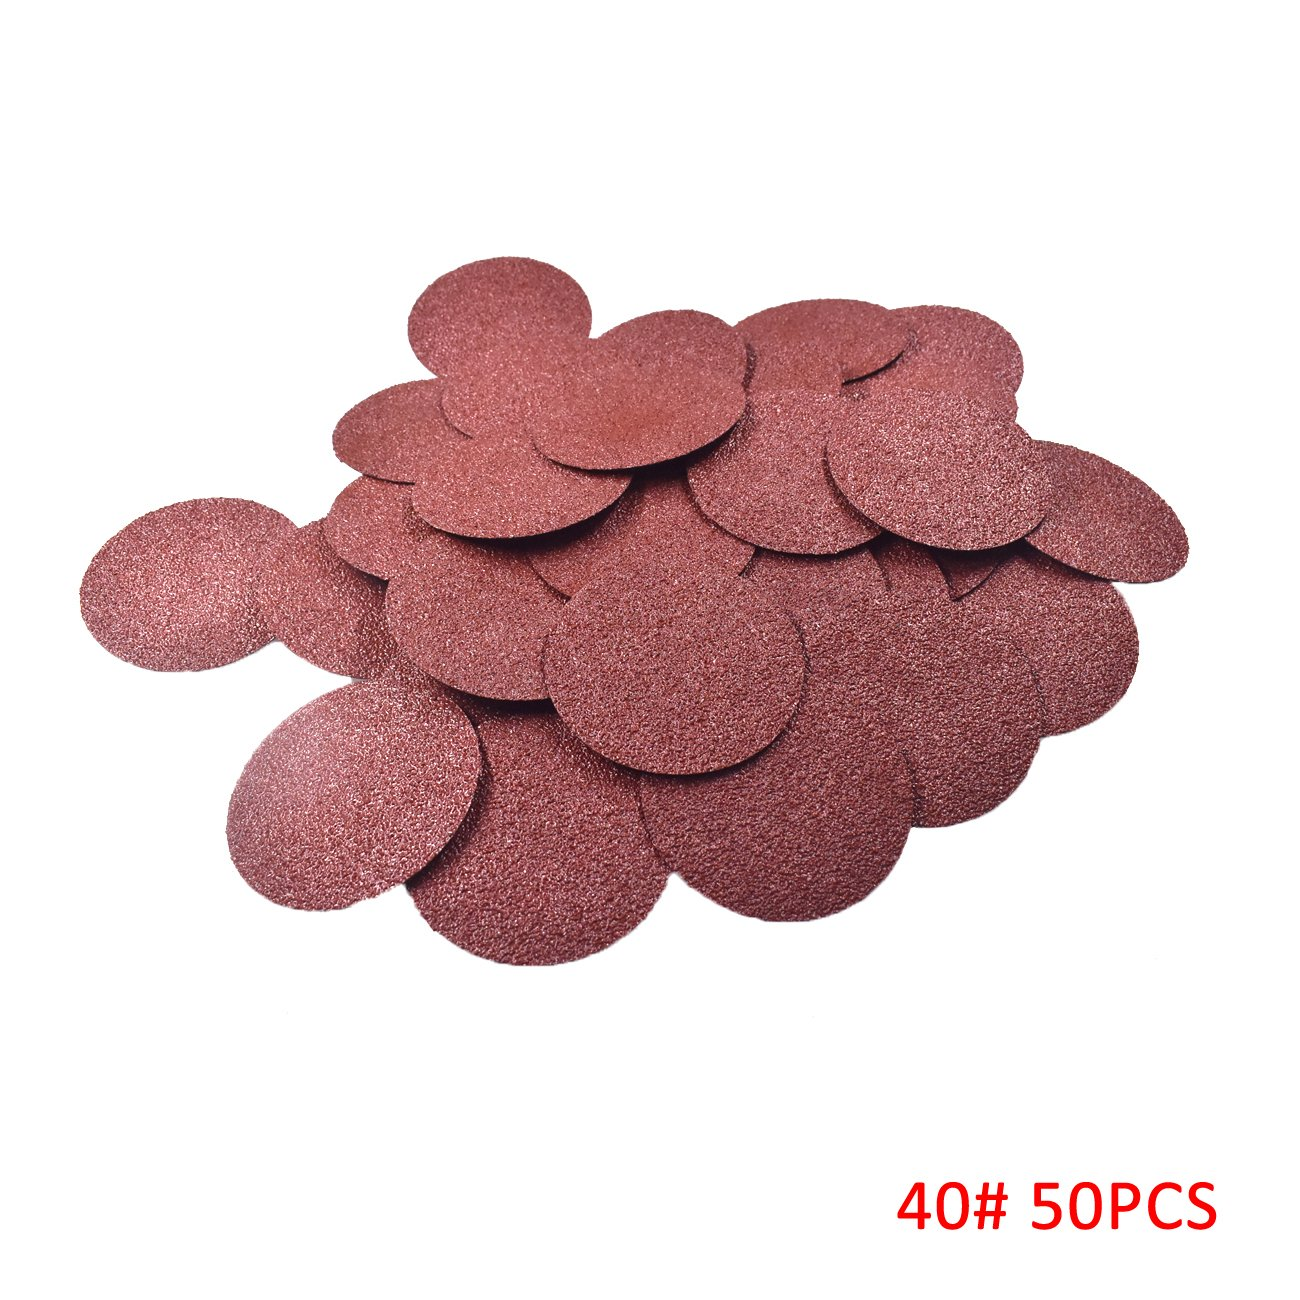 Supermotorparts 50 Pcs 3 Inch Roloc Discs Coarse 40 Grit R Type Sanding Abrasive Roll Lock